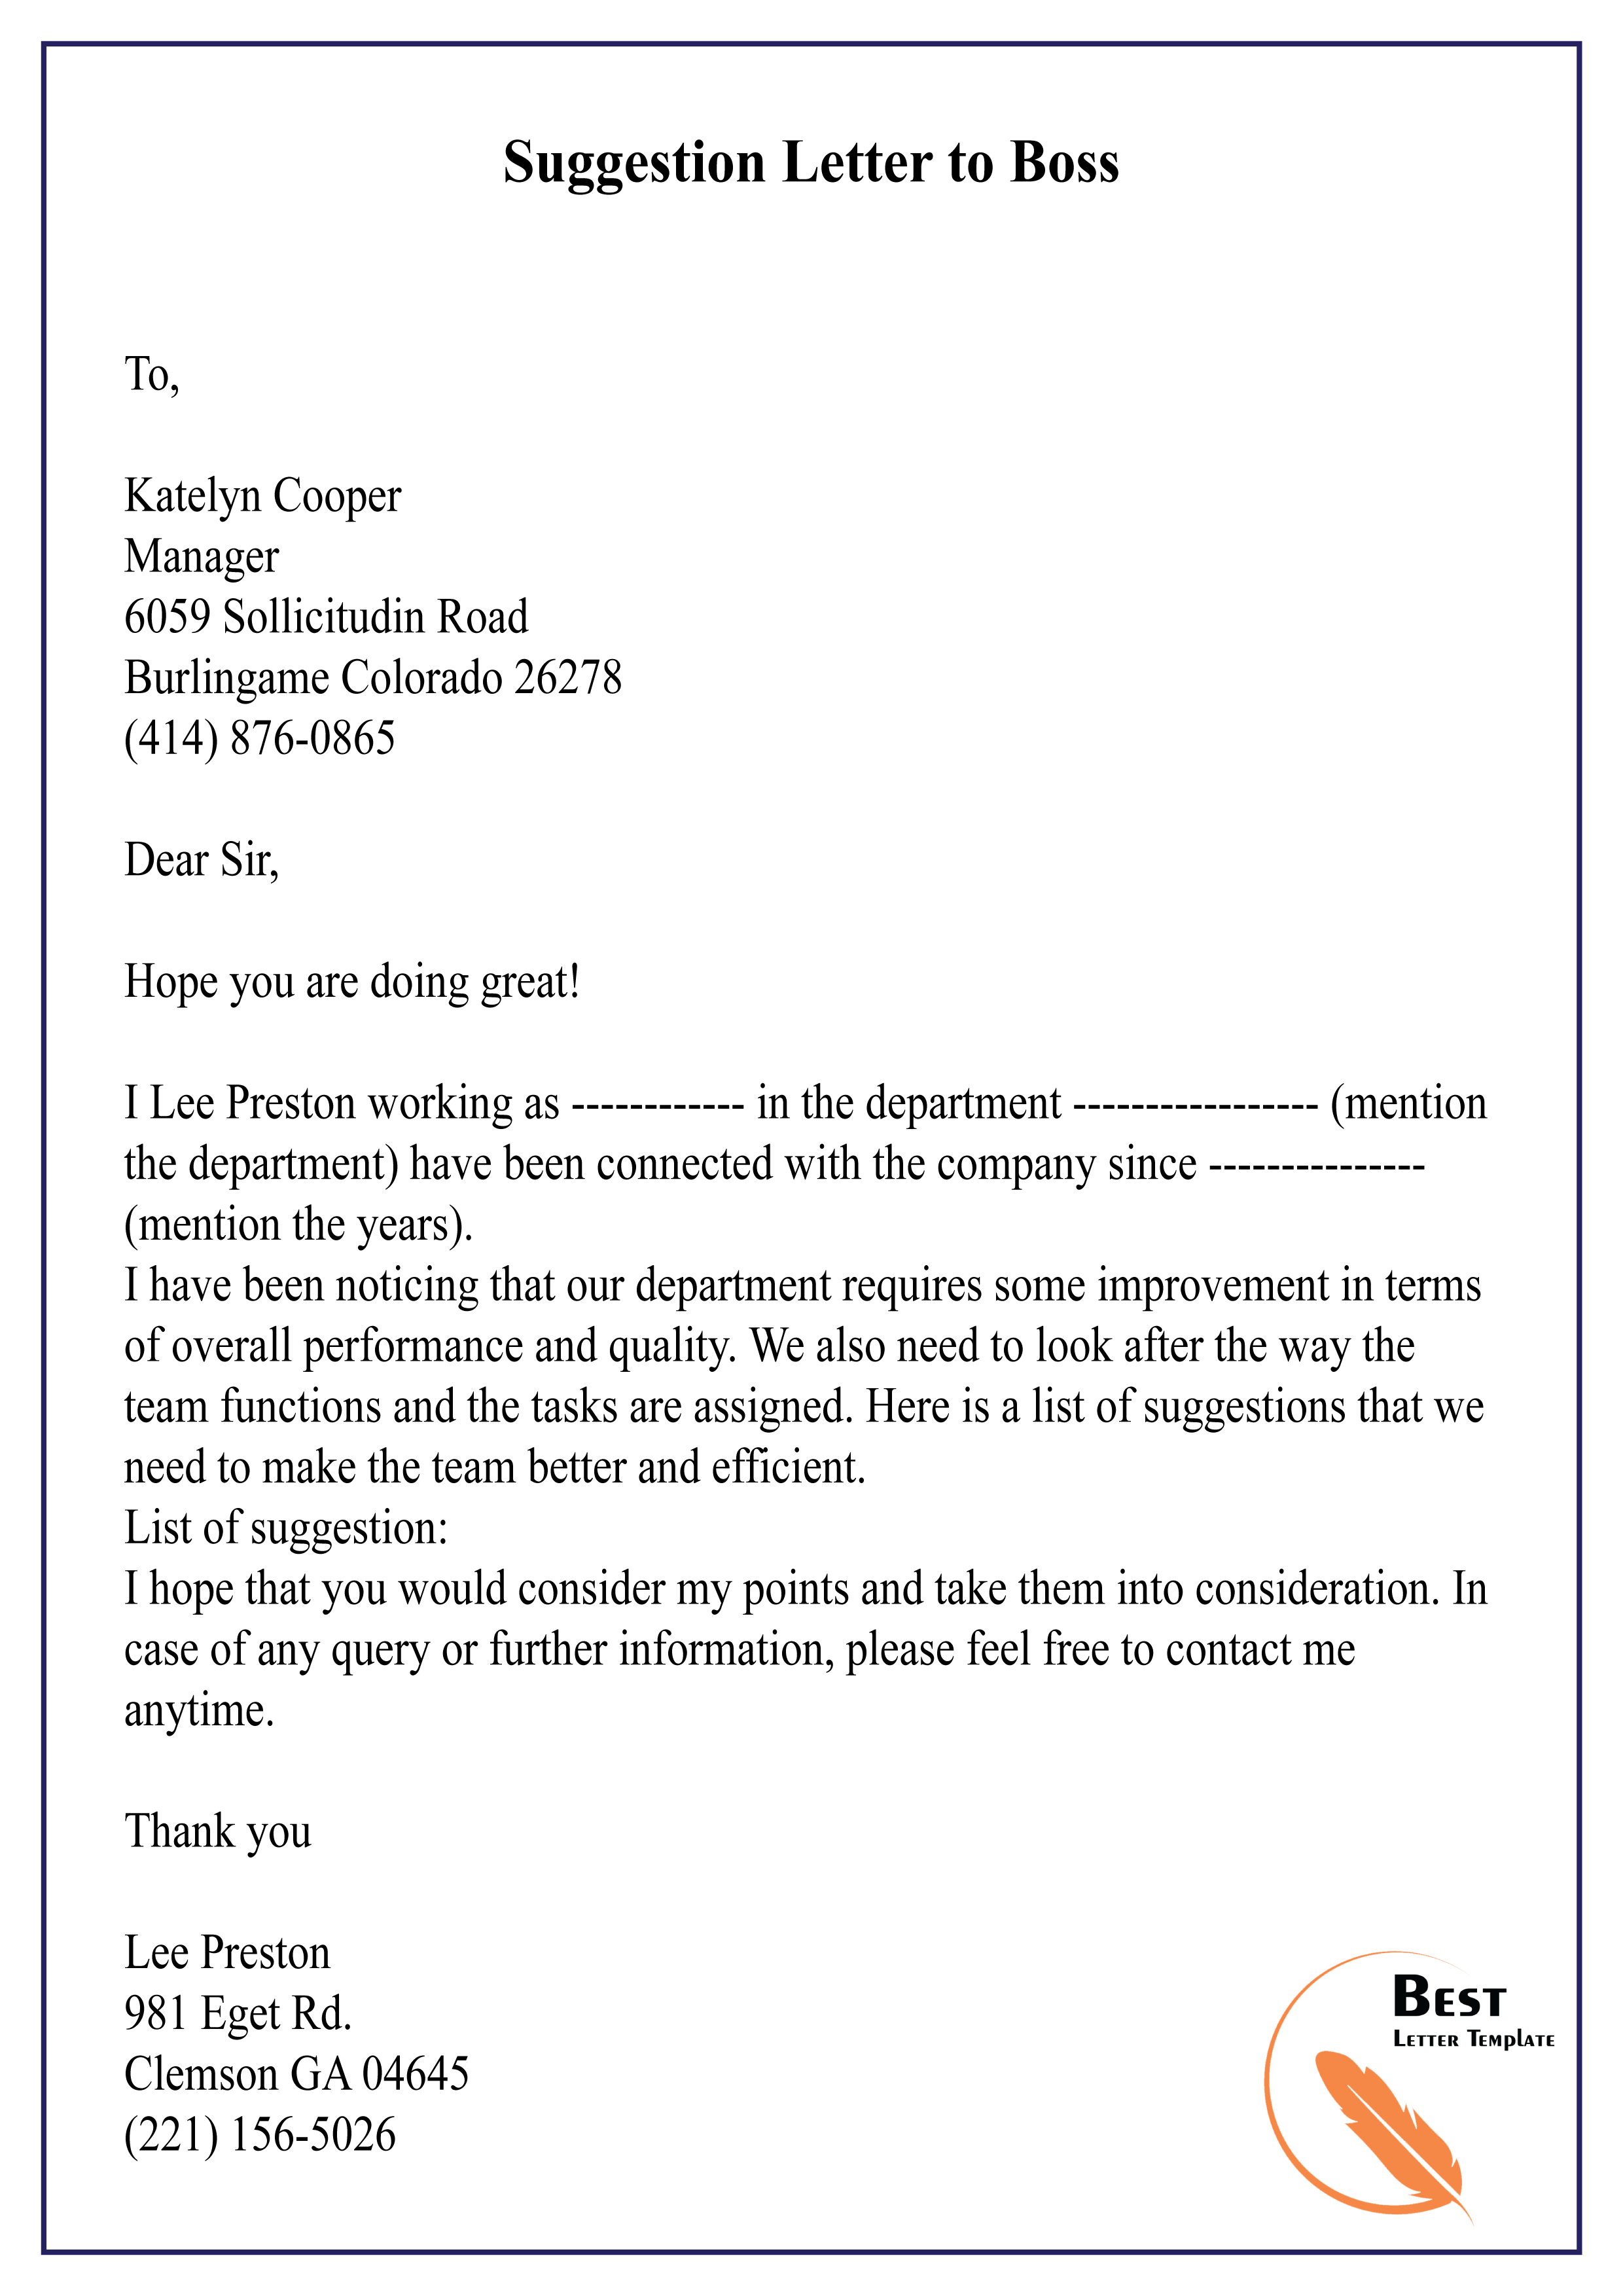 Compliment Letter To Boss from bestlettertemplate.com